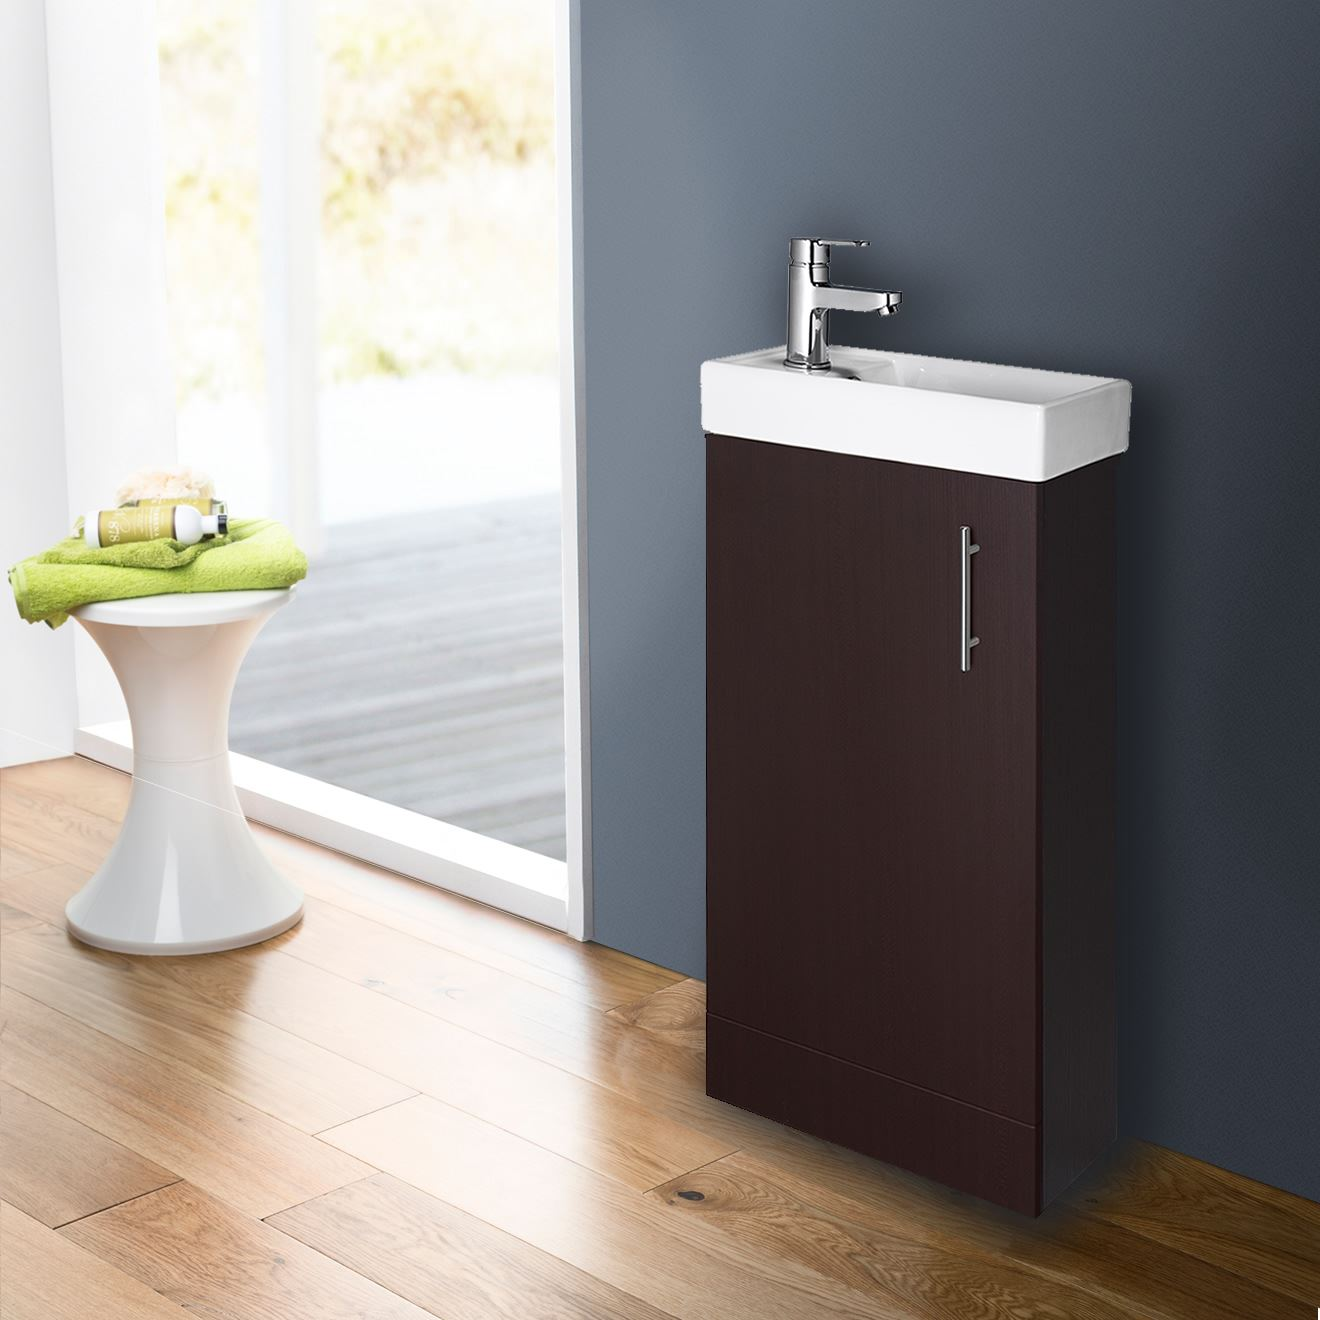 Compact Bathroom Vanity Unit Basin Sink Cloakroom 400mm